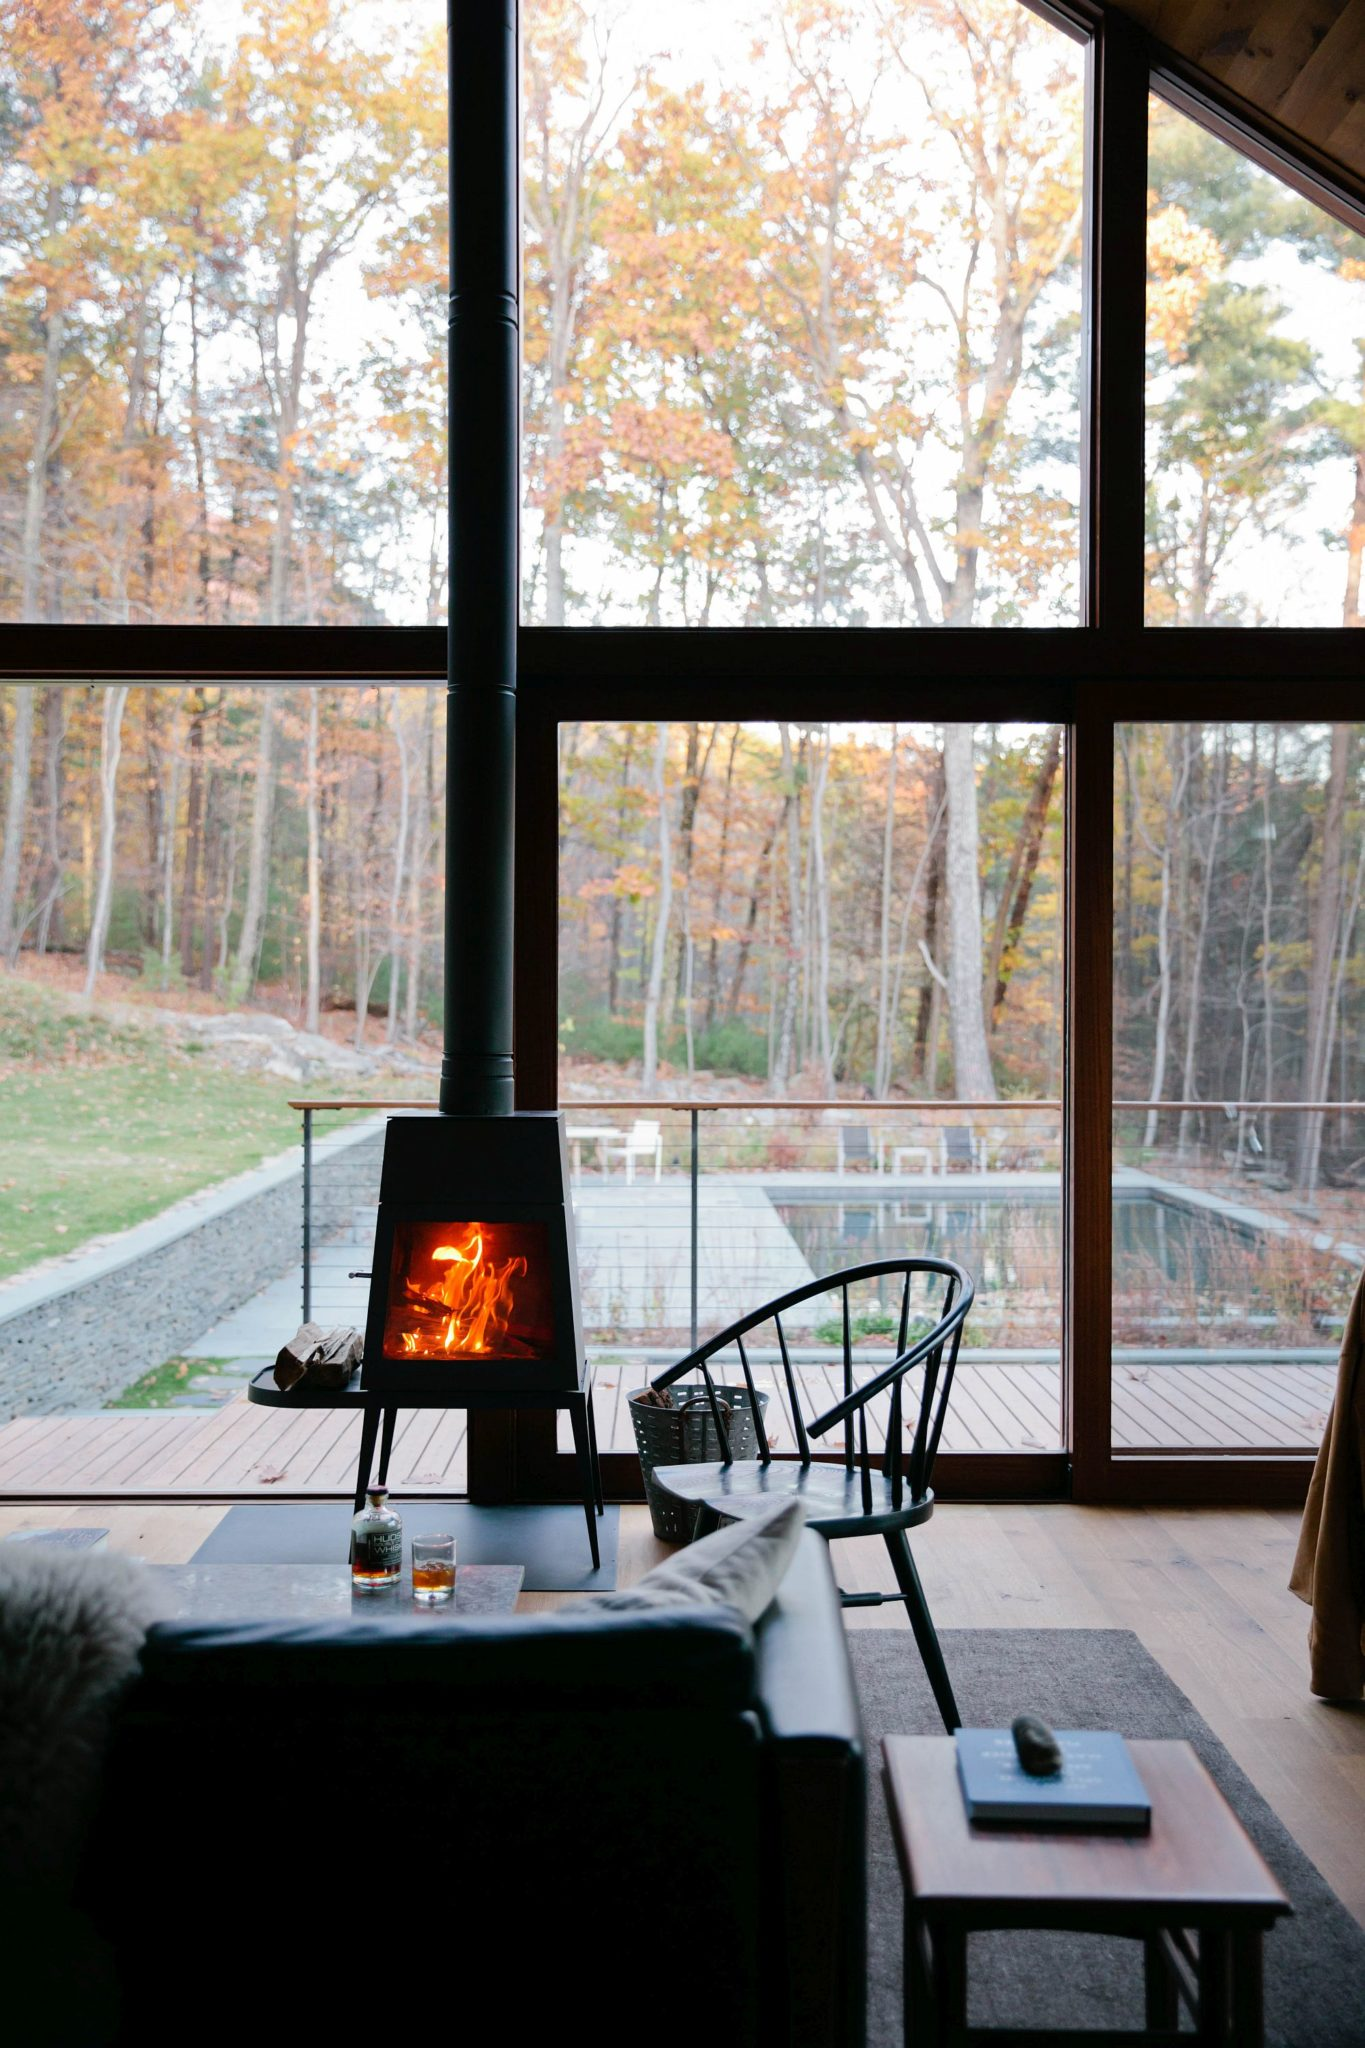 Efficient-fireplace-in-the-living-room-adds-to-its-Scandinavian-style